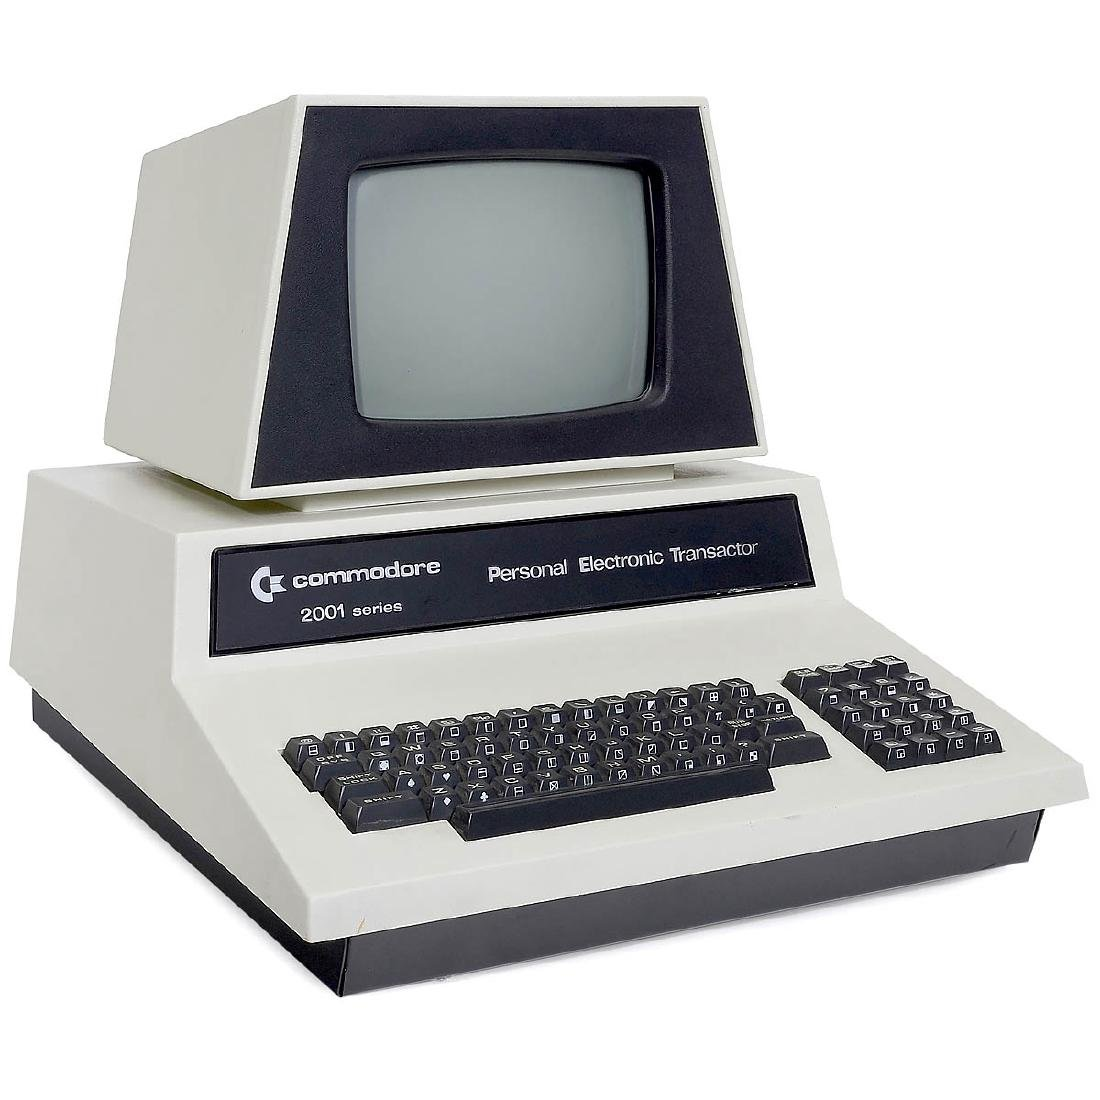 Commodore PET 2001-8N Computer, 1980